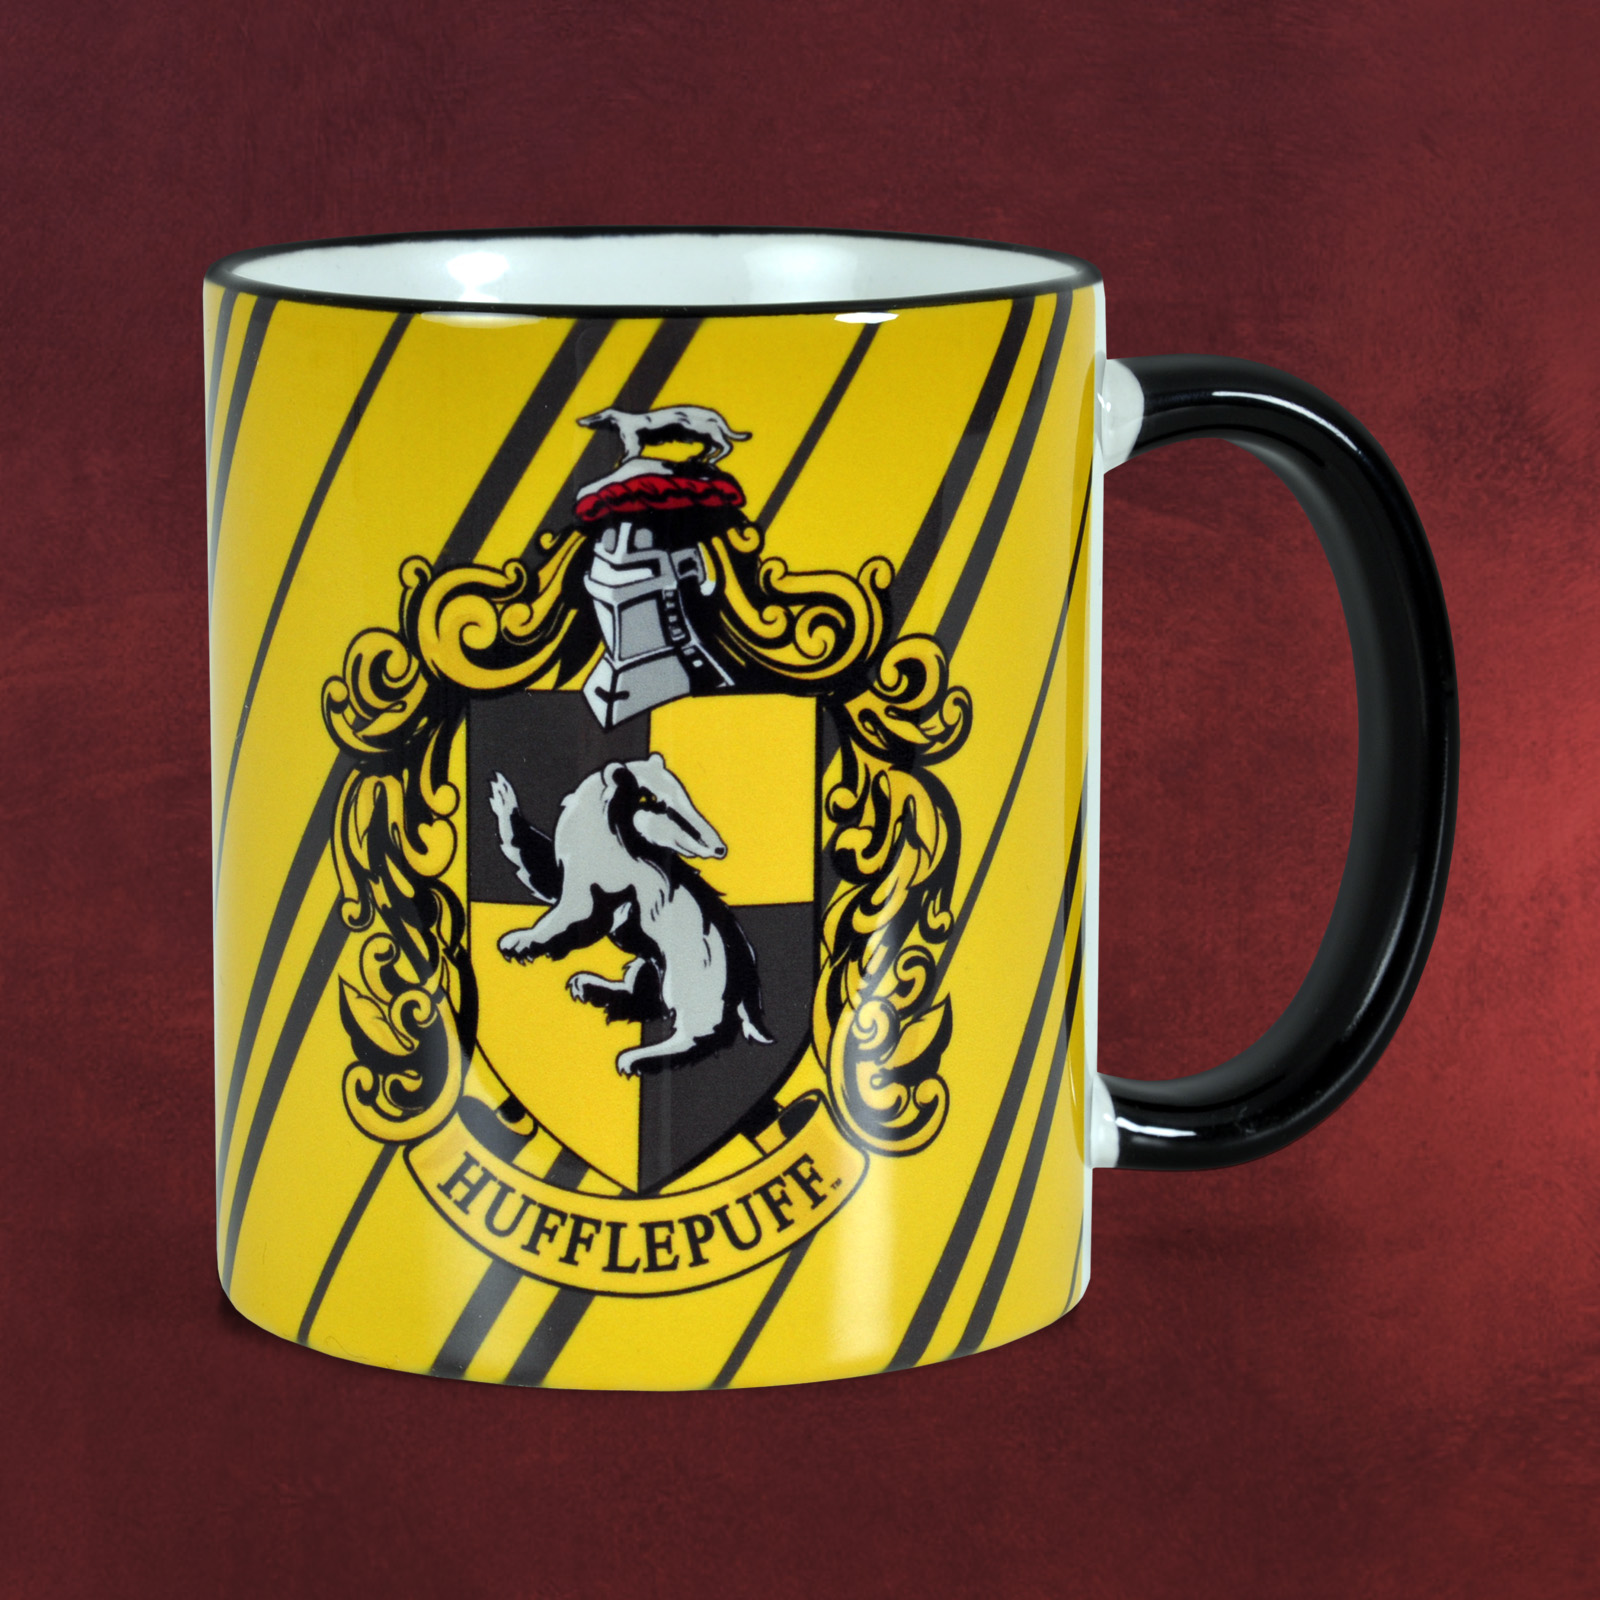 harry potter hufflepuff wappen tasse hogwarts haus symbol logo kaffee becher ebay. Black Bedroom Furniture Sets. Home Design Ideas